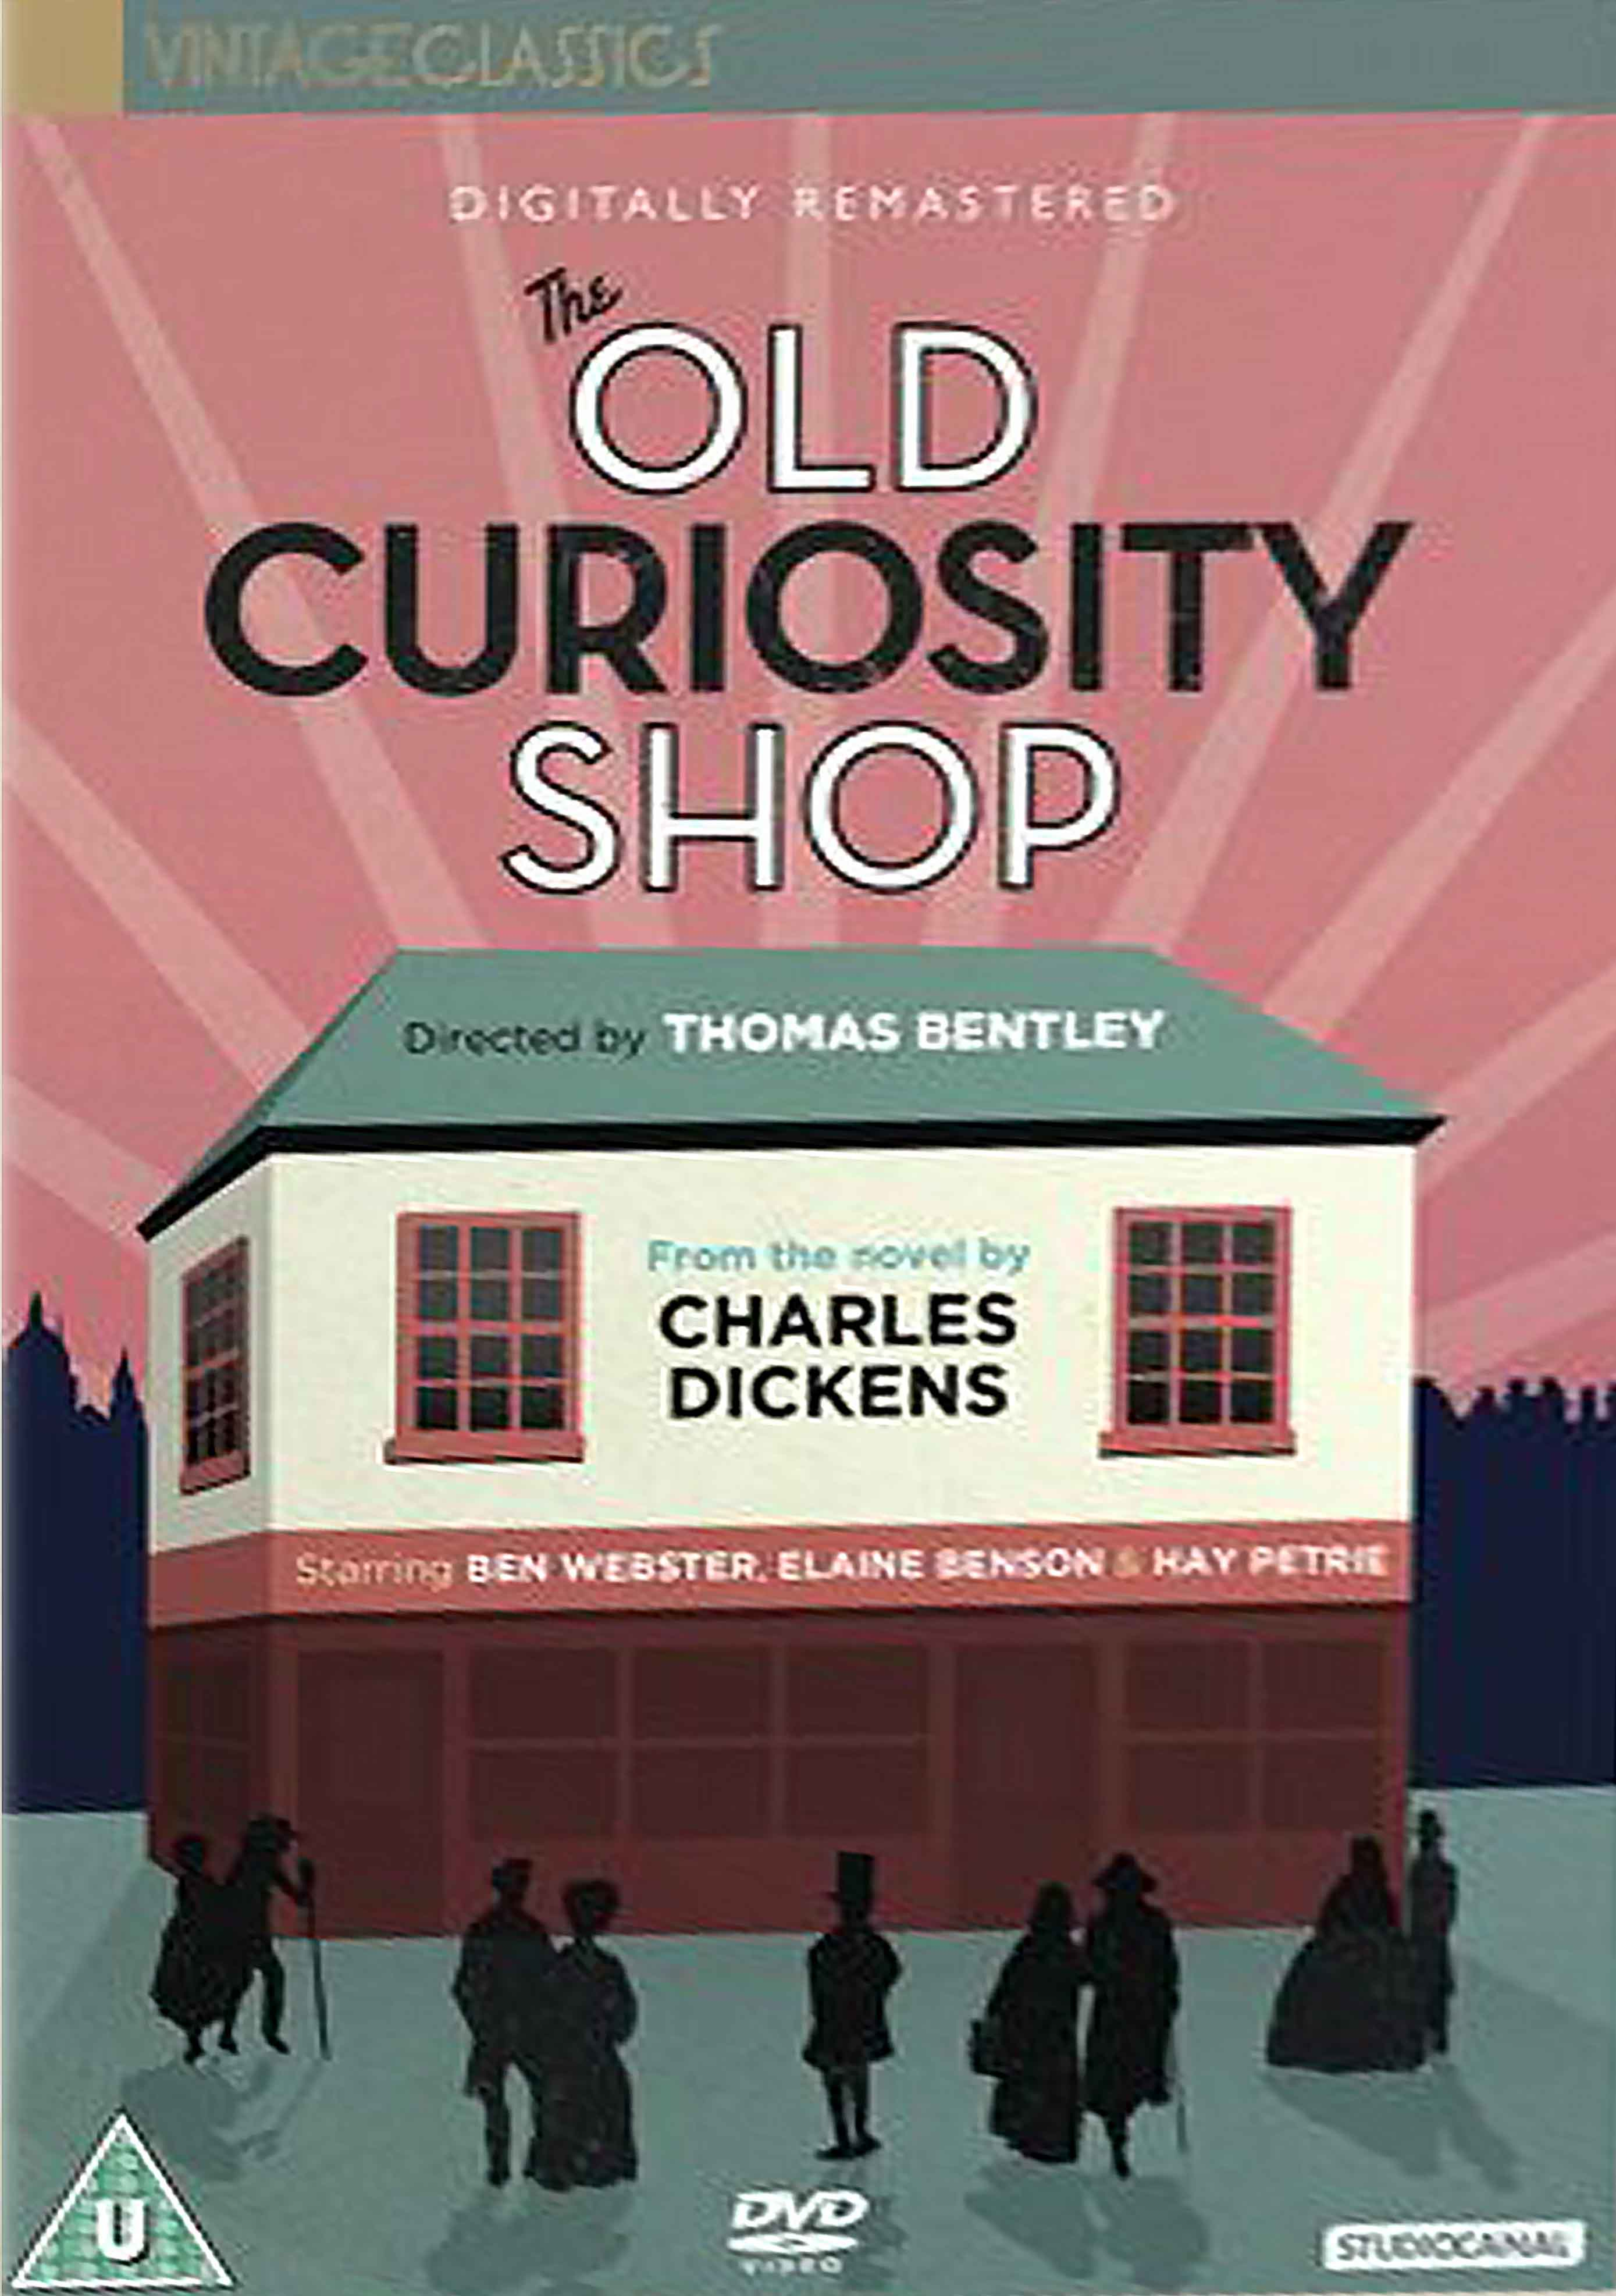 Buy The Old Curiosity Shop